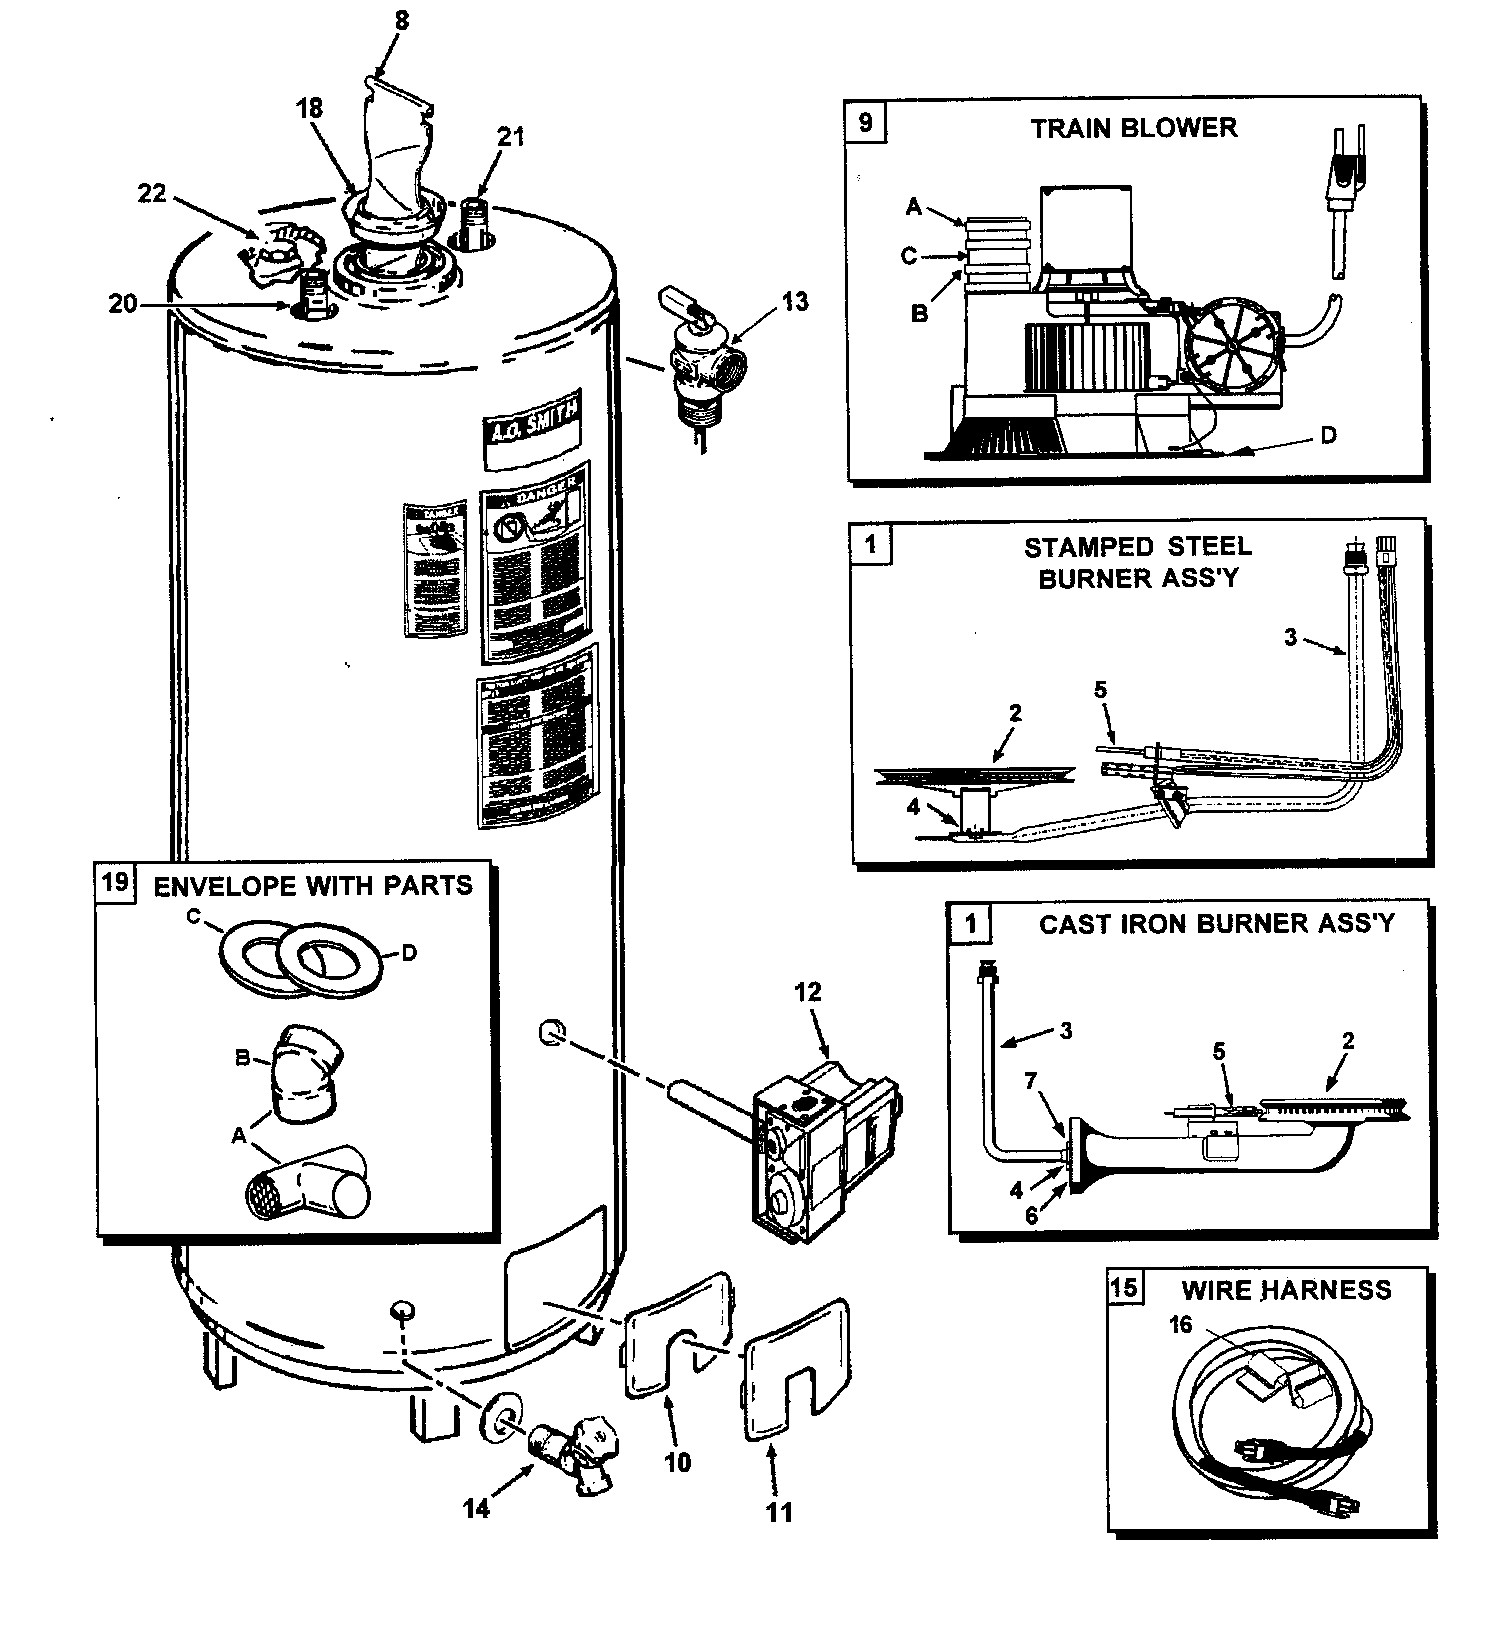 Electric Water Heater Parts Diagram Fancy Wiring For Propane Ao Smith Burner Motor Replacement Of